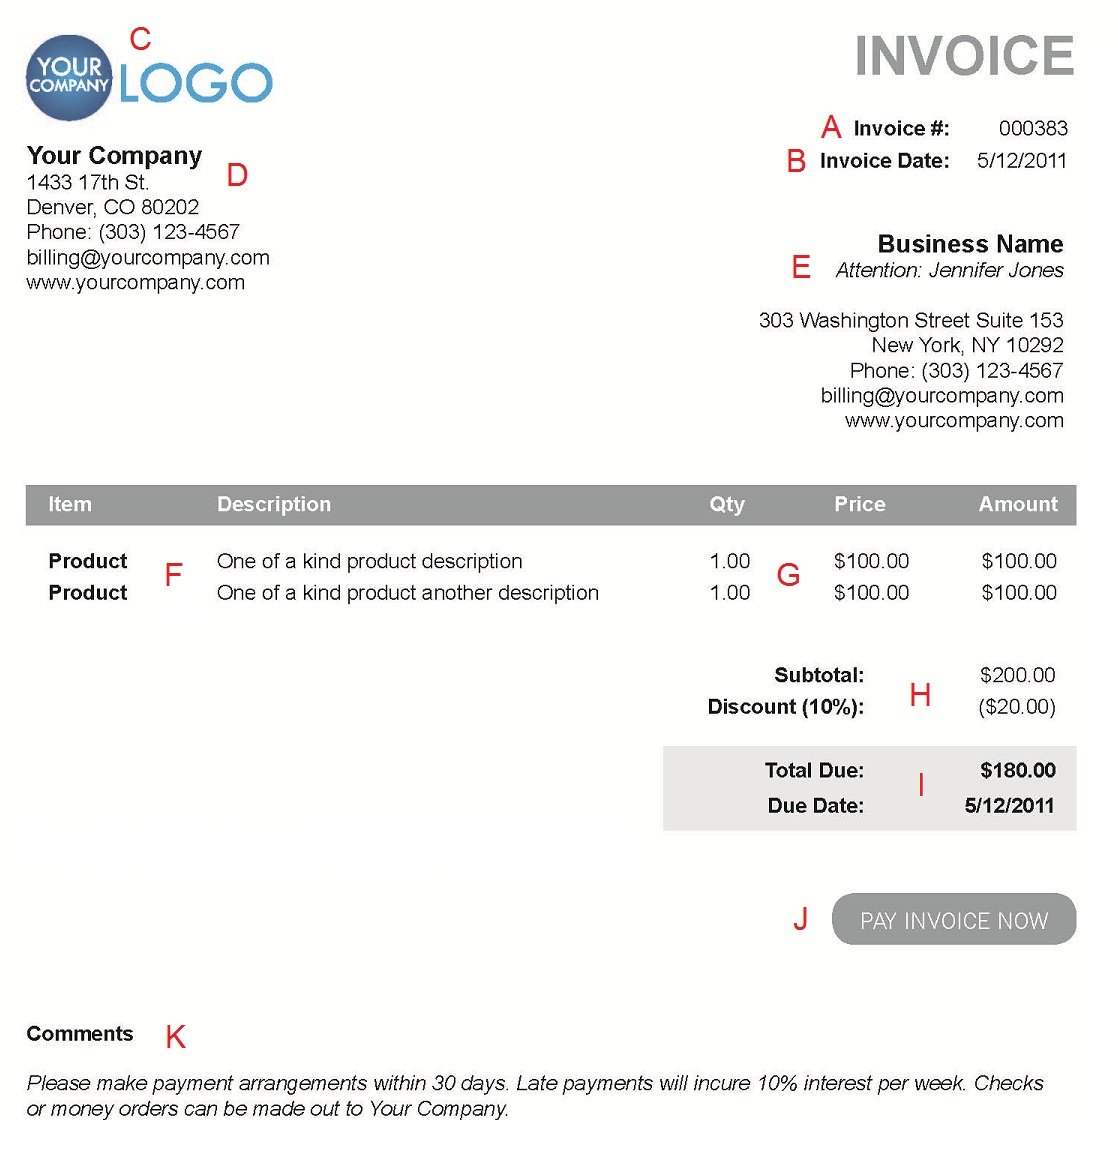 Opposenewapstandardsus  Ravishing The  Different Sections Of An Electronic Payment Invoice With Glamorous A  With Amazing Invoice In Arrears Also How To Create An Invoice In Paypal In Addition Invoice Copies And How To Make A Invoice Template As Well As Nch Software Express Invoice Additionally Invoicing Software Free From Paysimplecom With Opposenewapstandardsus  Glamorous The  Different Sections Of An Electronic Payment Invoice With Amazing A  And Ravishing Invoice In Arrears Also How To Create An Invoice In Paypal In Addition Invoice Copies From Paysimplecom